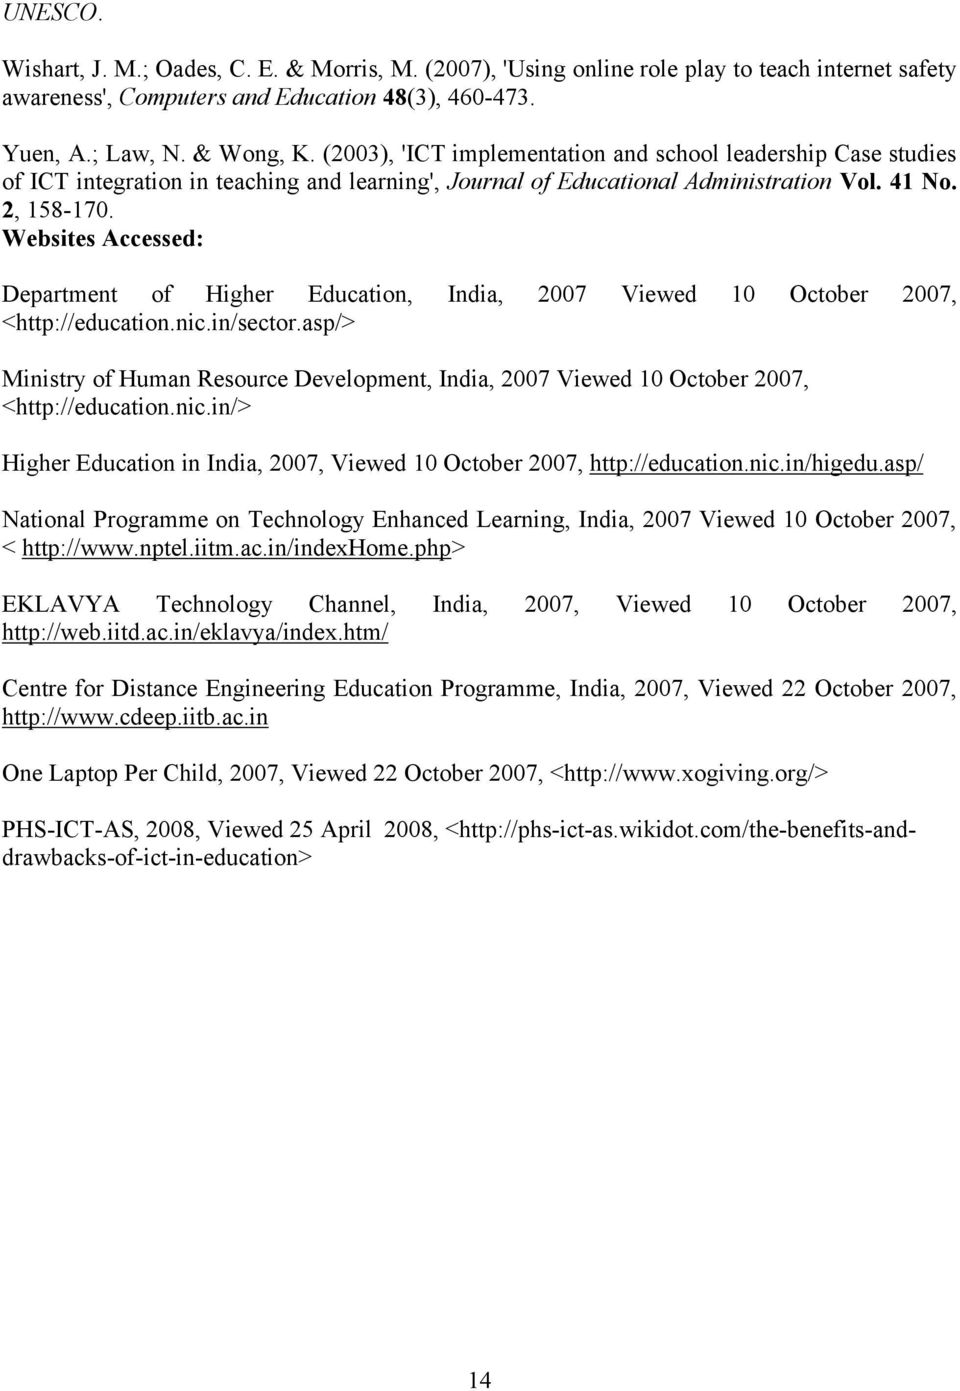 Websites Accessed: Department of Higher Education, India, 2007 Viewed 10 October 2007, <http://education.nic.in/sector.